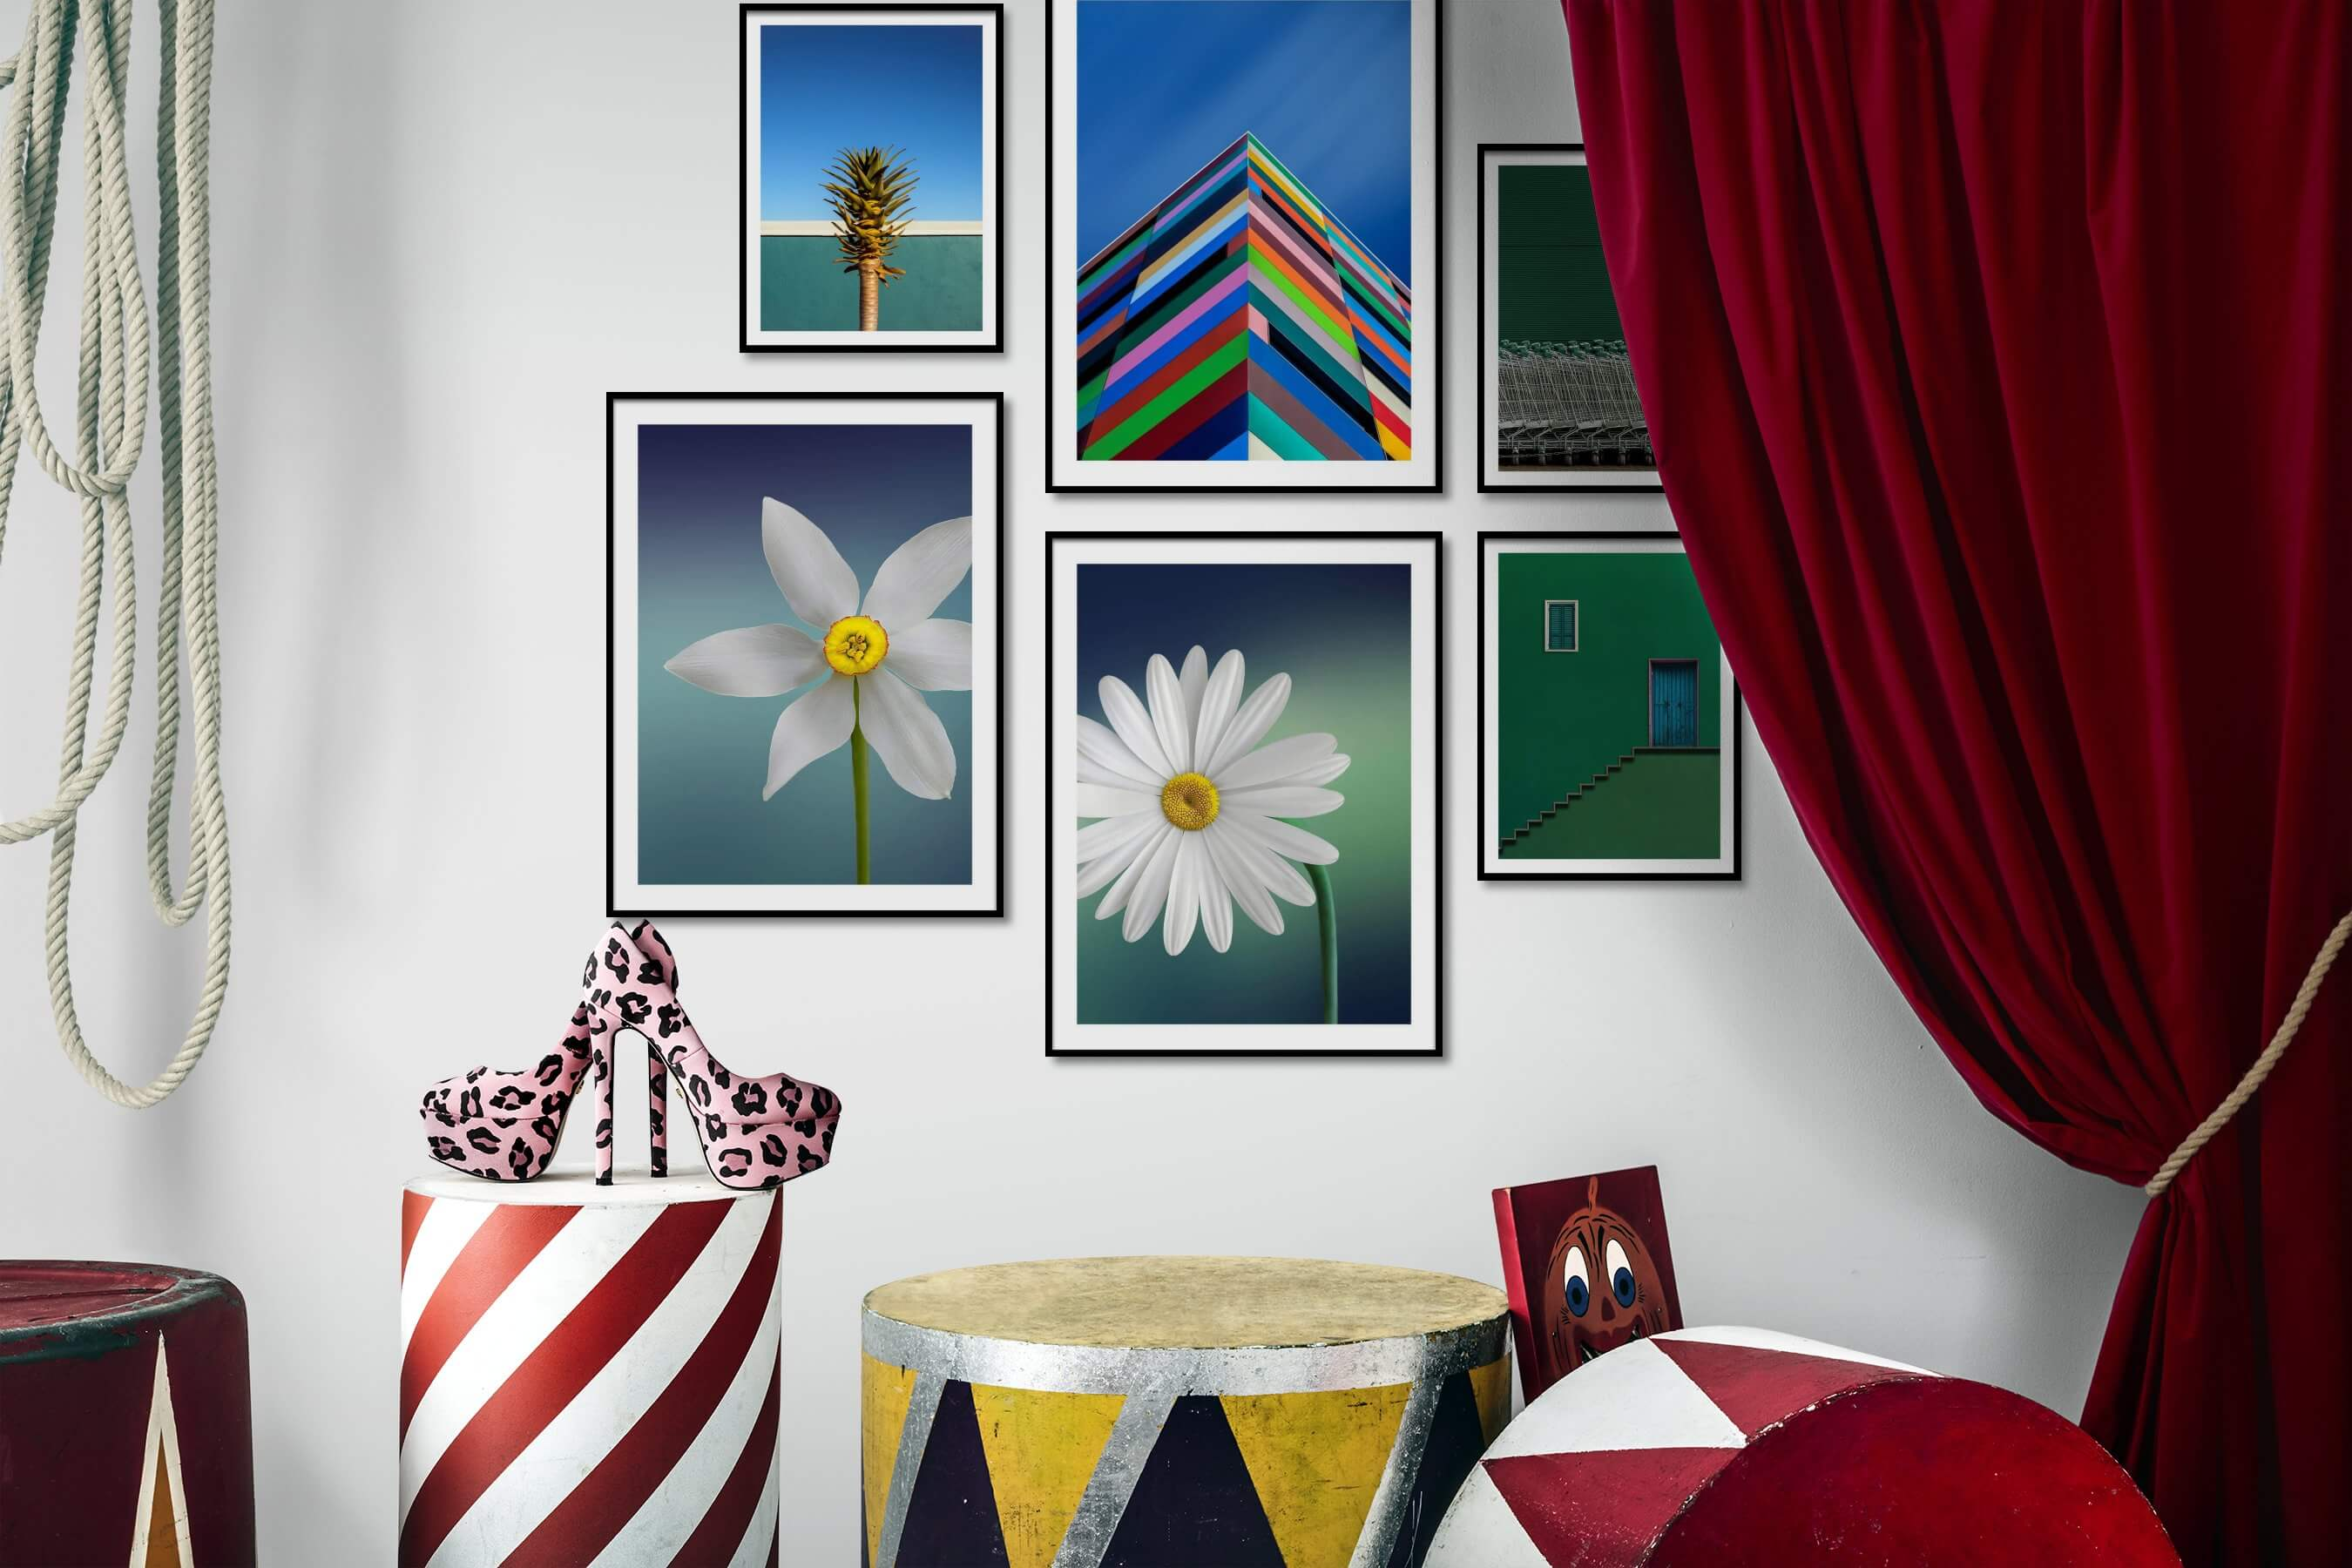 Gallery wall idea with six framed pictures arranged on a wall depicting For the Minimalist, Flowers & Plants, Colorful, and For the Moderate